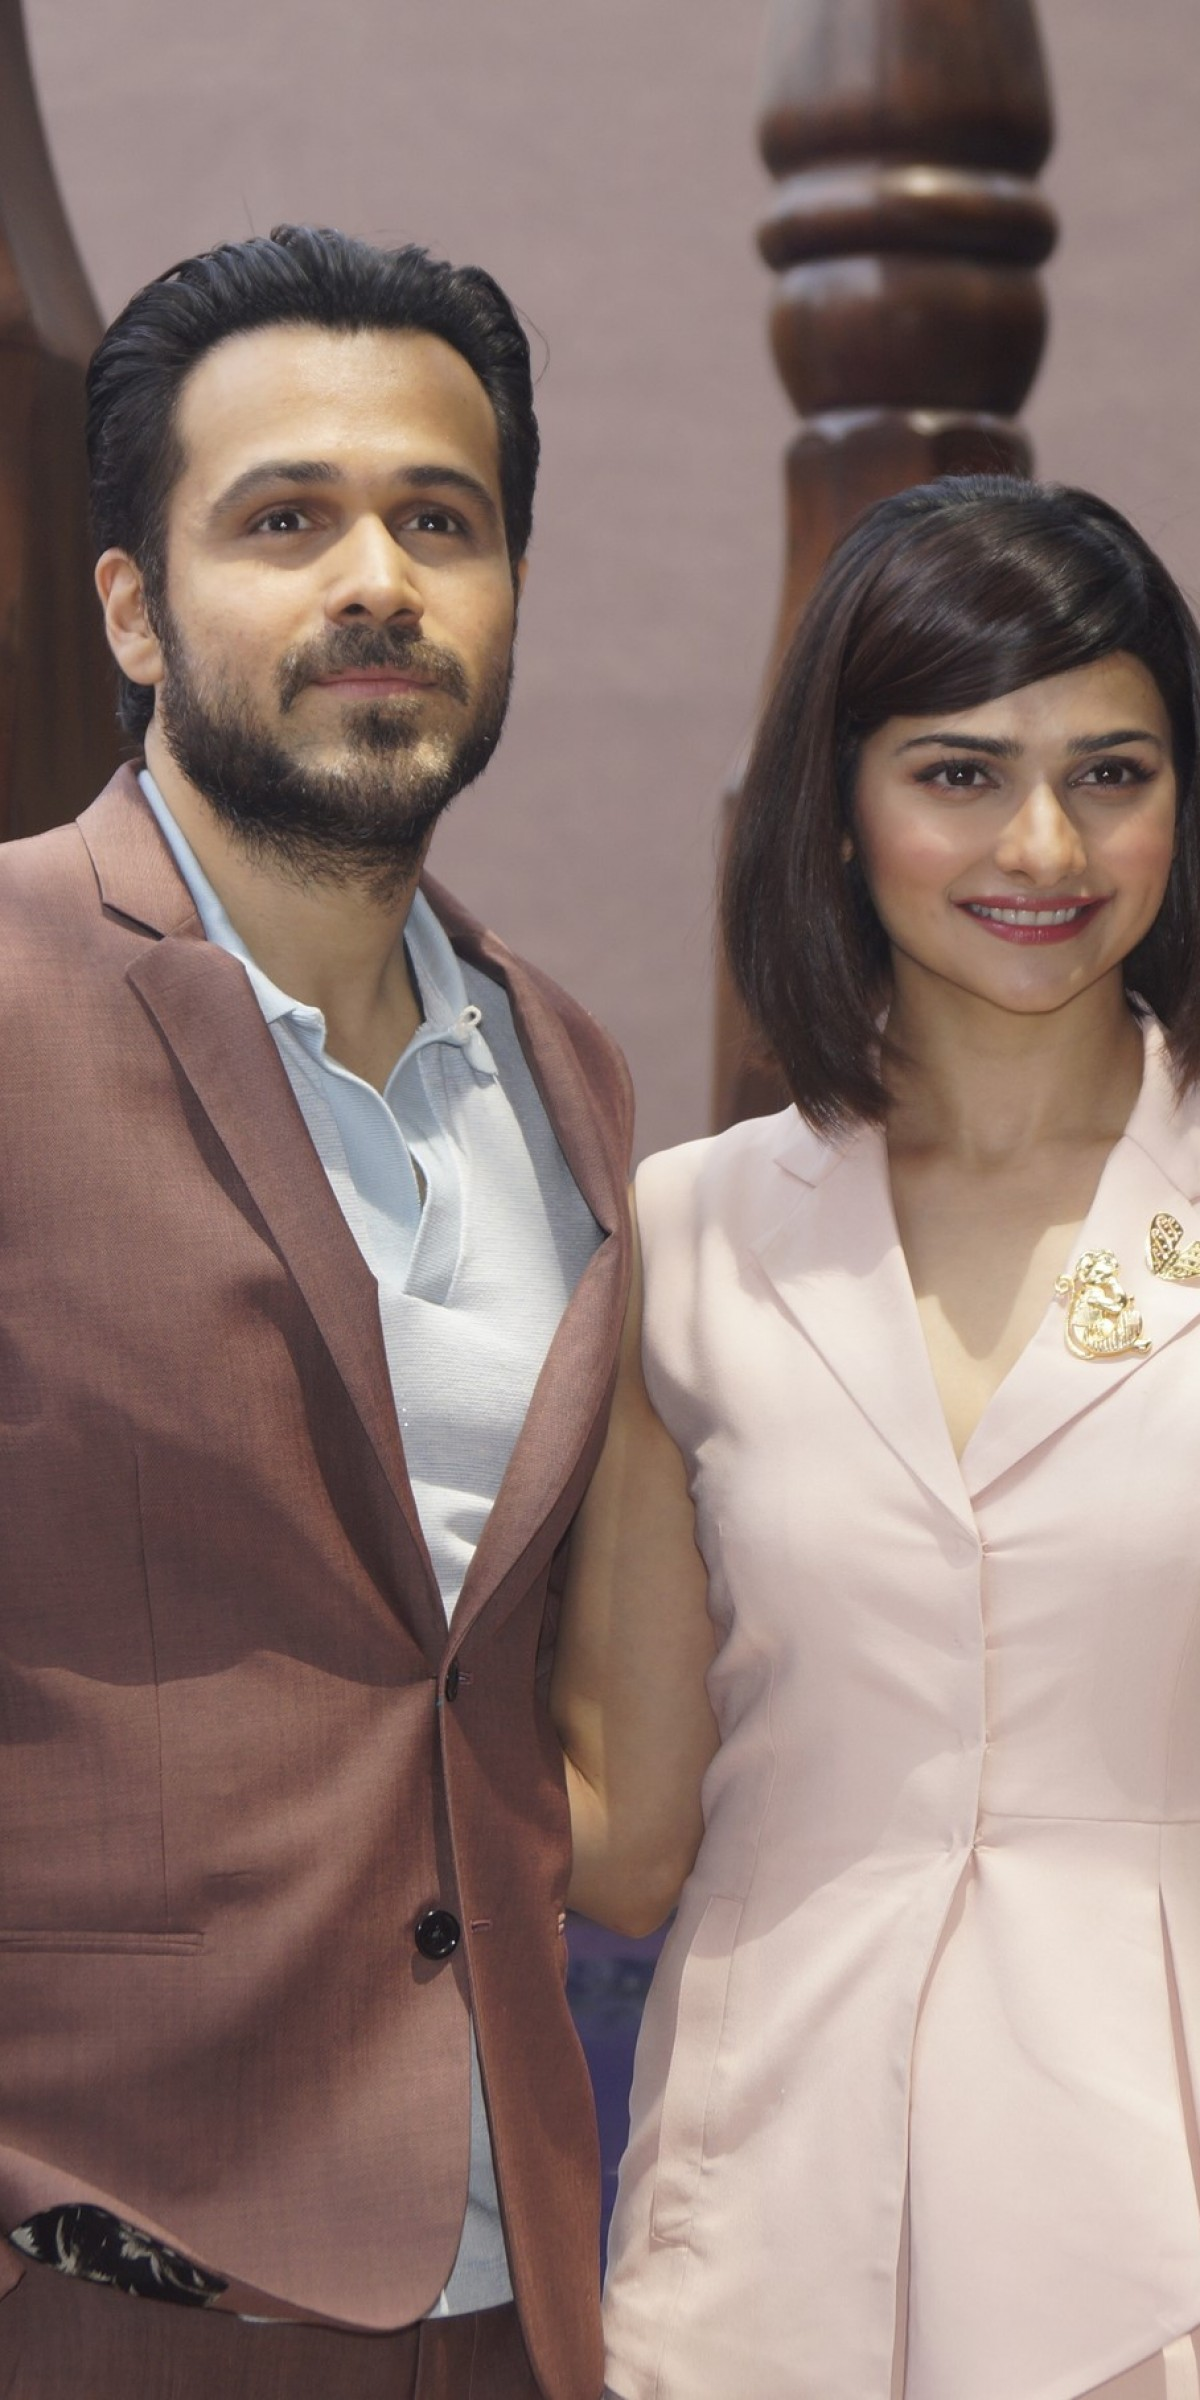 Emraan Hashmi and Prachi Desai Promotion of film Azhar in New Delhi